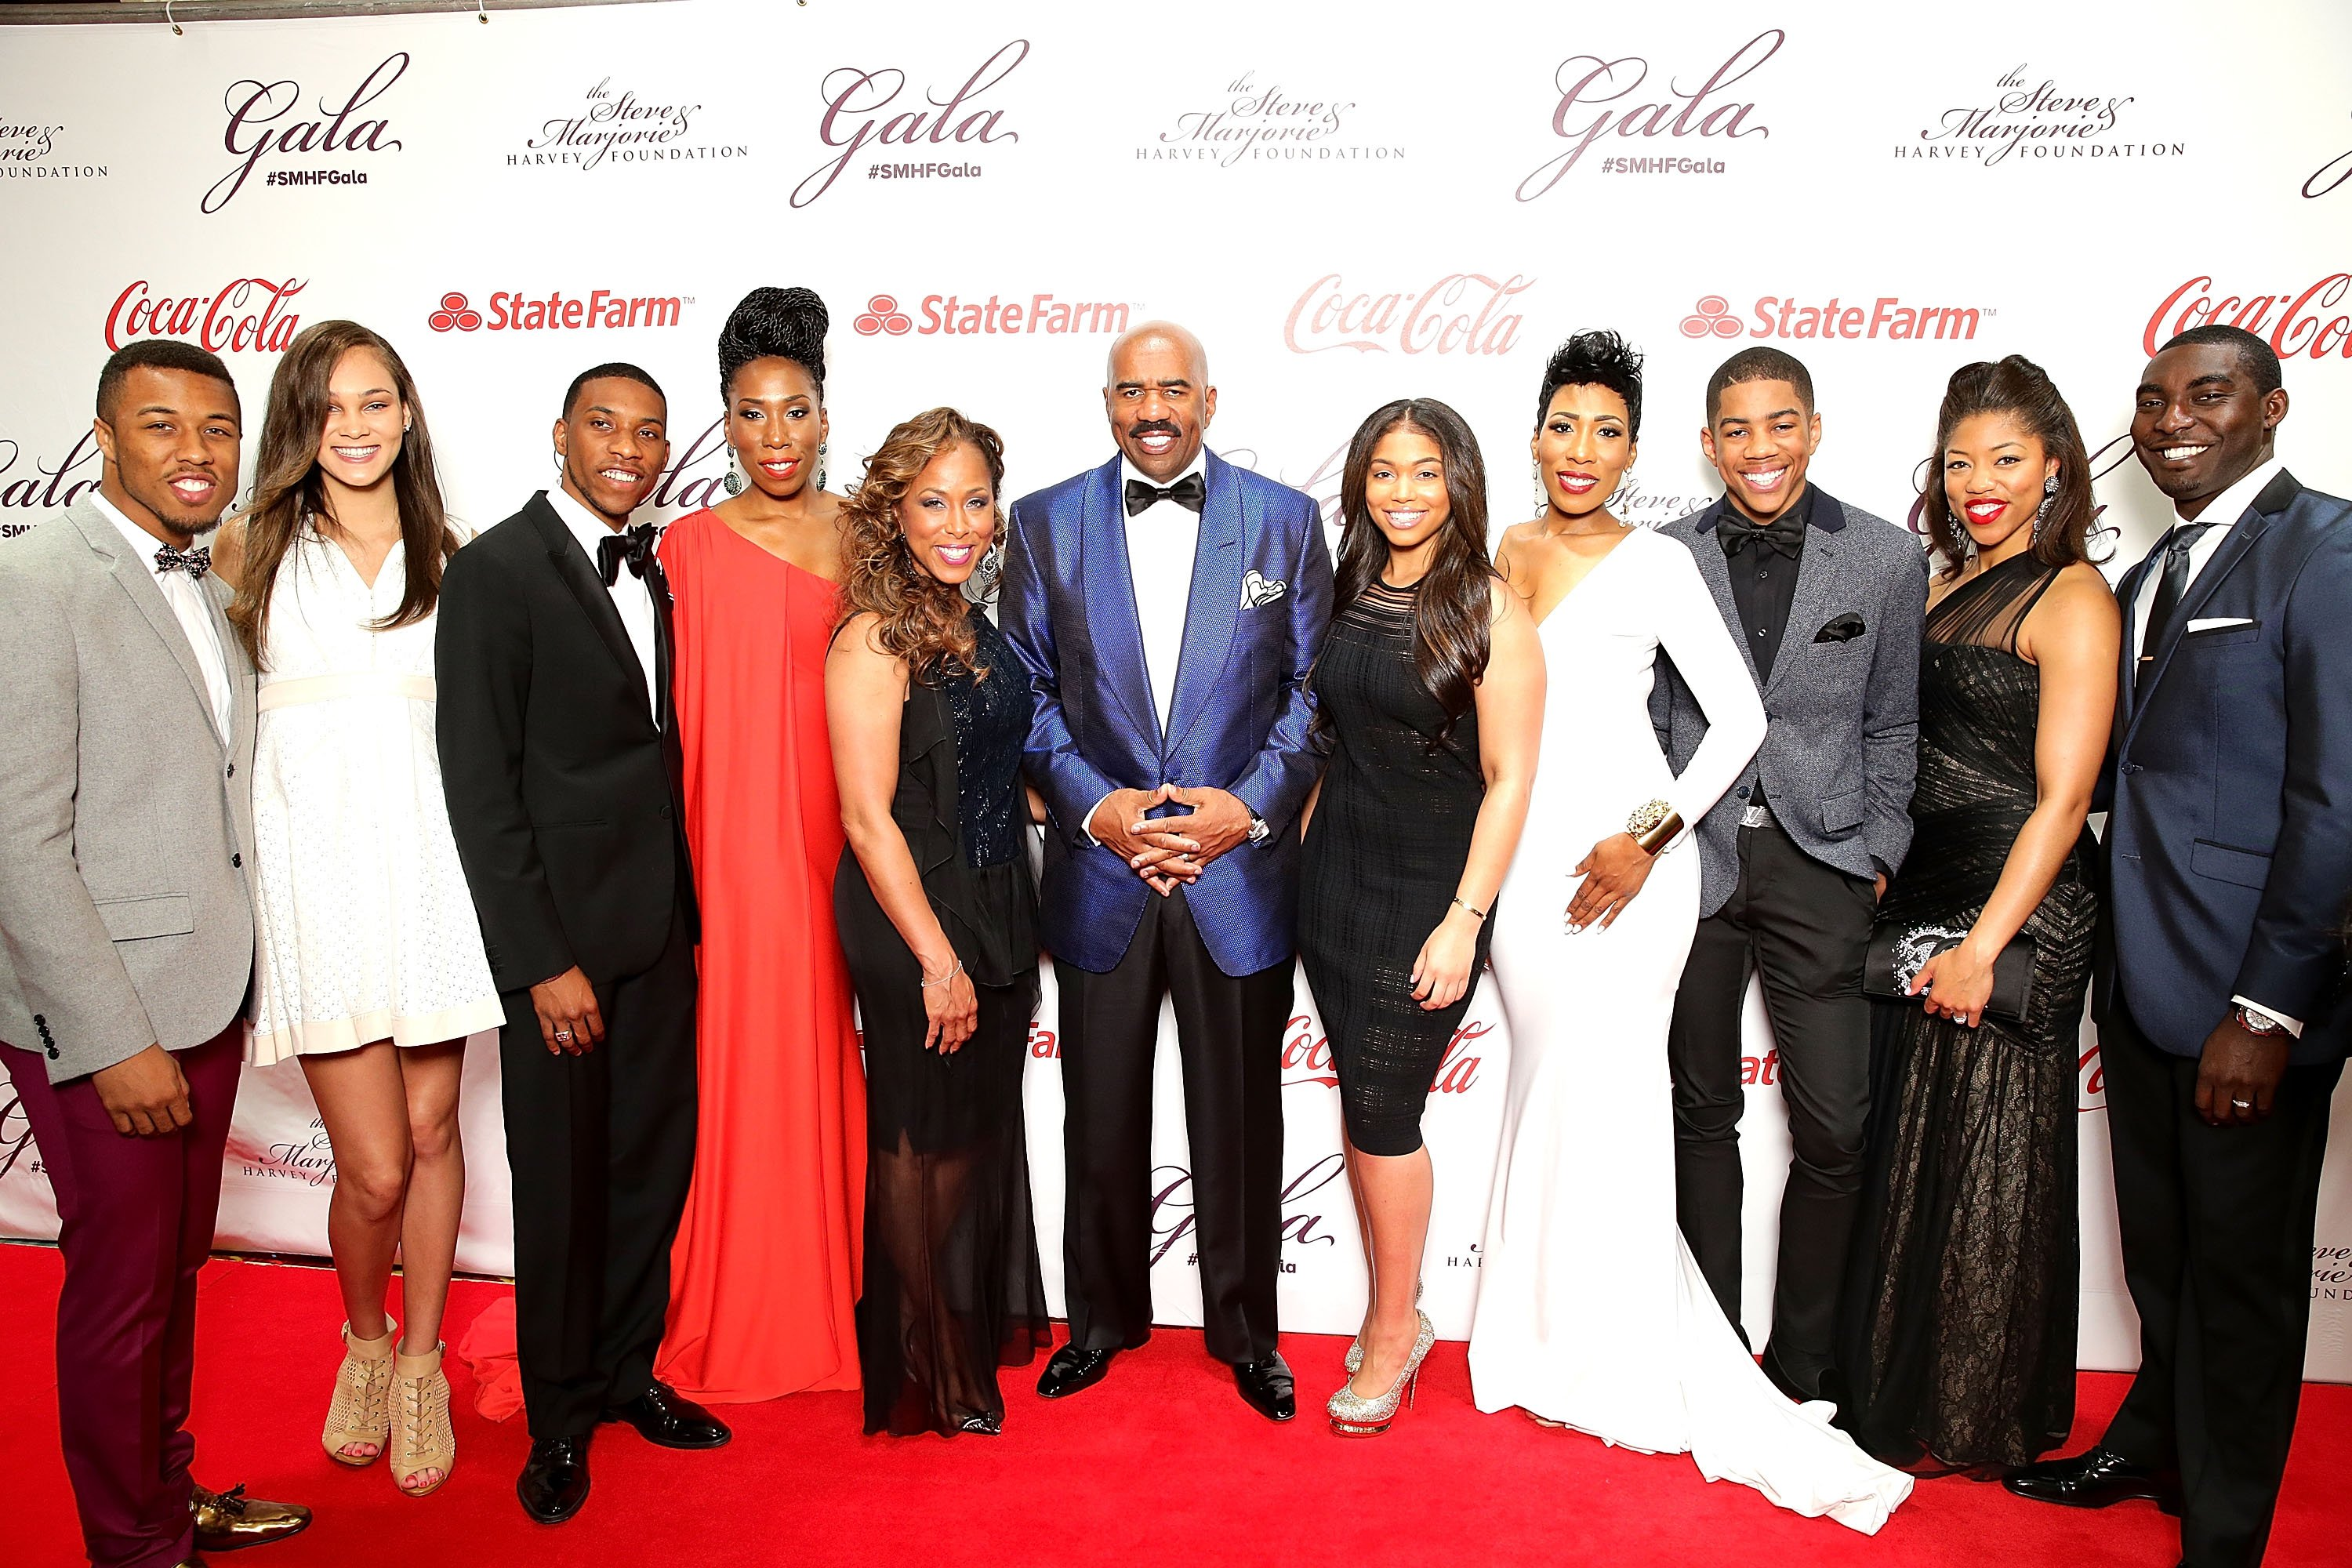 (L-R) Jason Harvey, Amanda Harvey, Broderick Harvey Jr., Brandi Harvey, Marjorie Harvey, Steve Harvey, Lori Harvey, Karli Harvey, Wynton Harvey, Morgan Hawthorne & Kareem Hawthorne at the Steve & Marjorie Harvey Foundation Gala on May 3, 2014 in Chicago | Photo: Getty Images